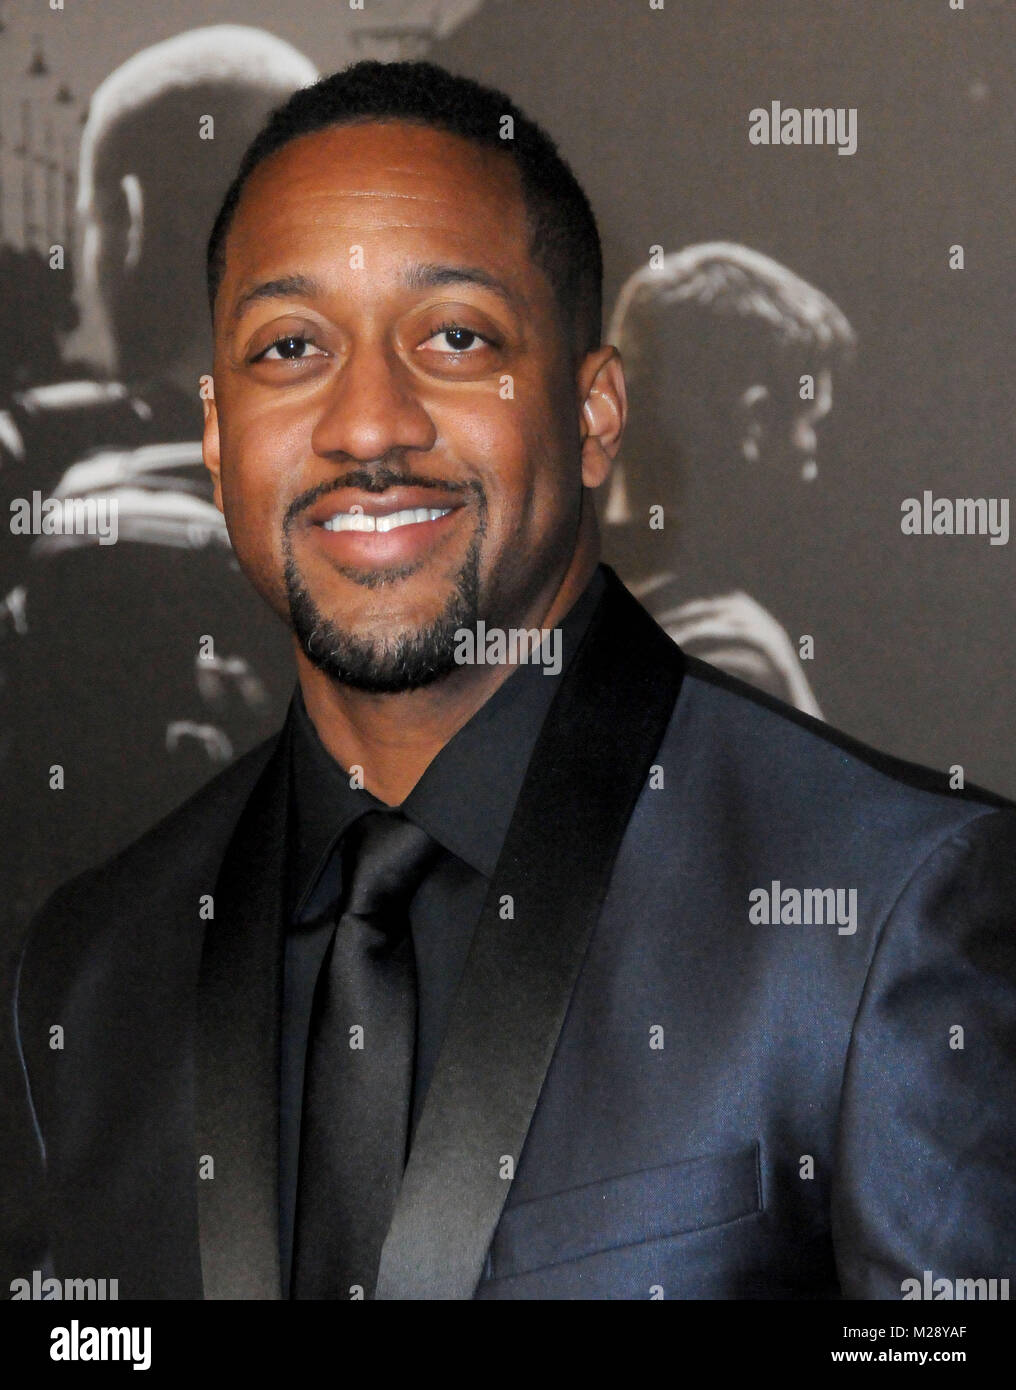 Burbank, California, USA. 5th February, 2018. Actor Jaleel White attends the World Premiere of 'The 15:17 To Paris' at Warner Bros. Studios, SJR Theater on February 5, 2018 in Burbank, California. Photo by Barry King/Alamy Live News Stock Photo